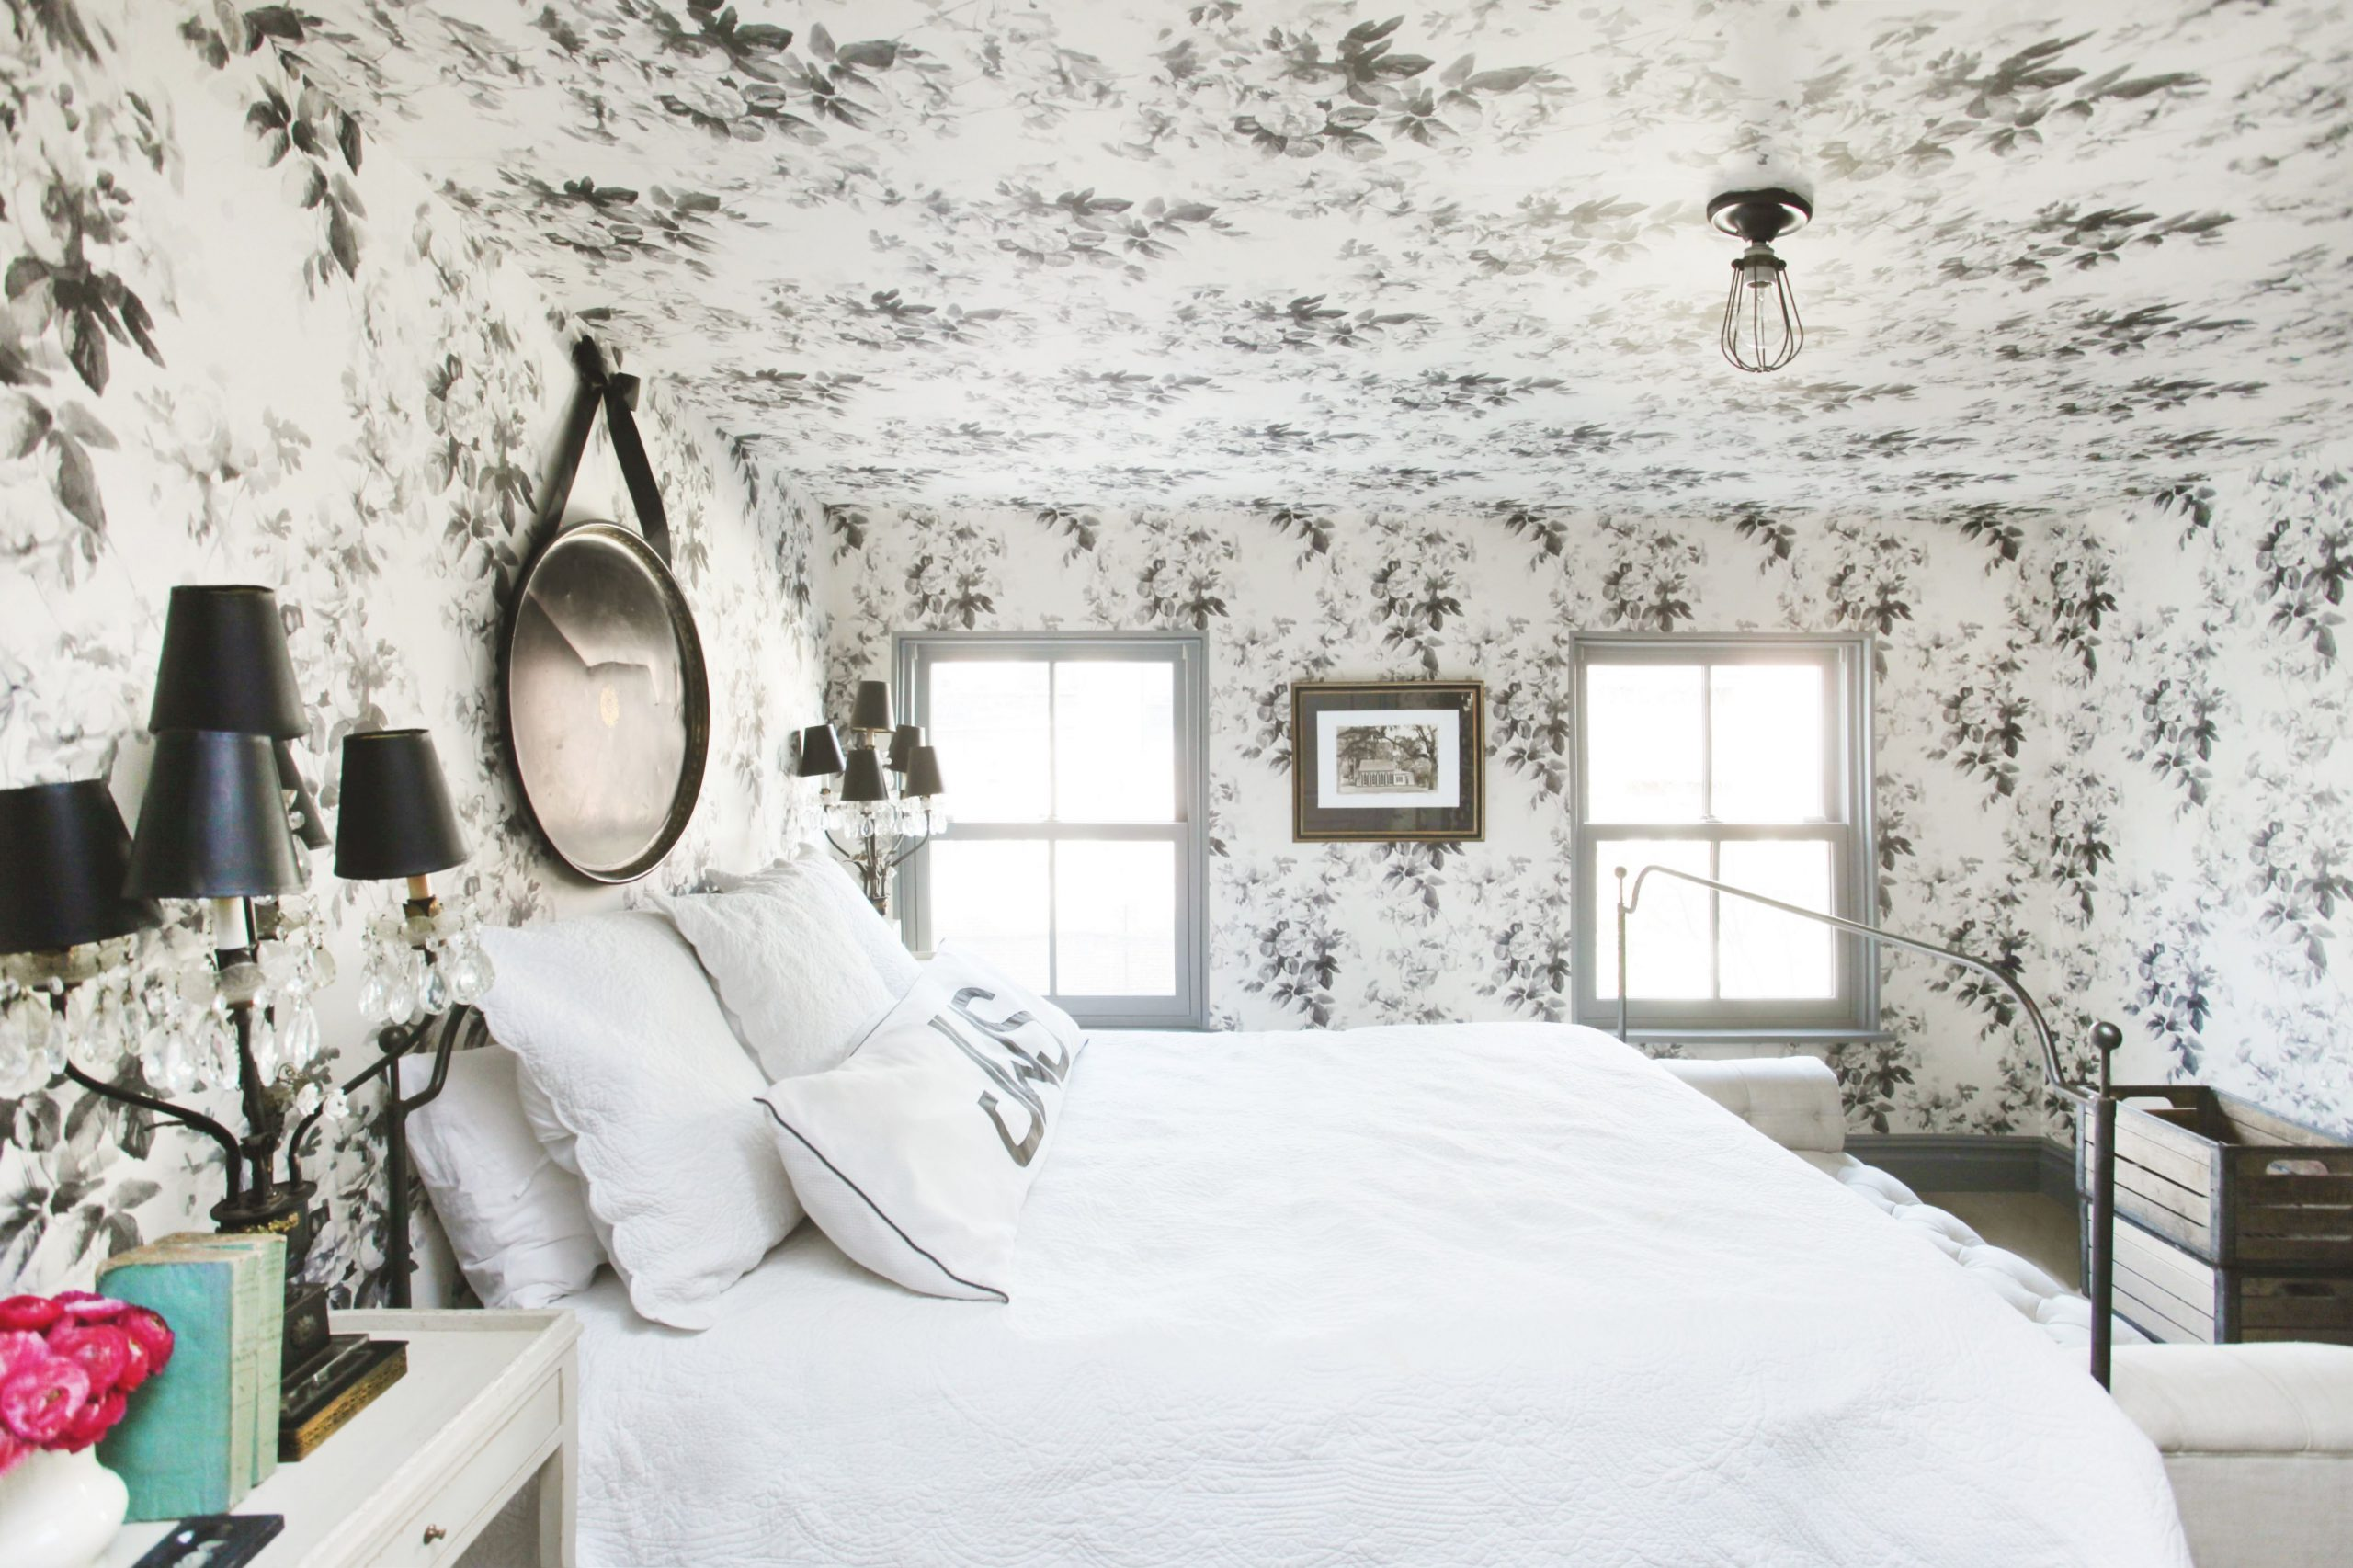 15 Master Bedroom Decorating Ideas And Design Inspiration with Decorating Ideas Master Bedroom